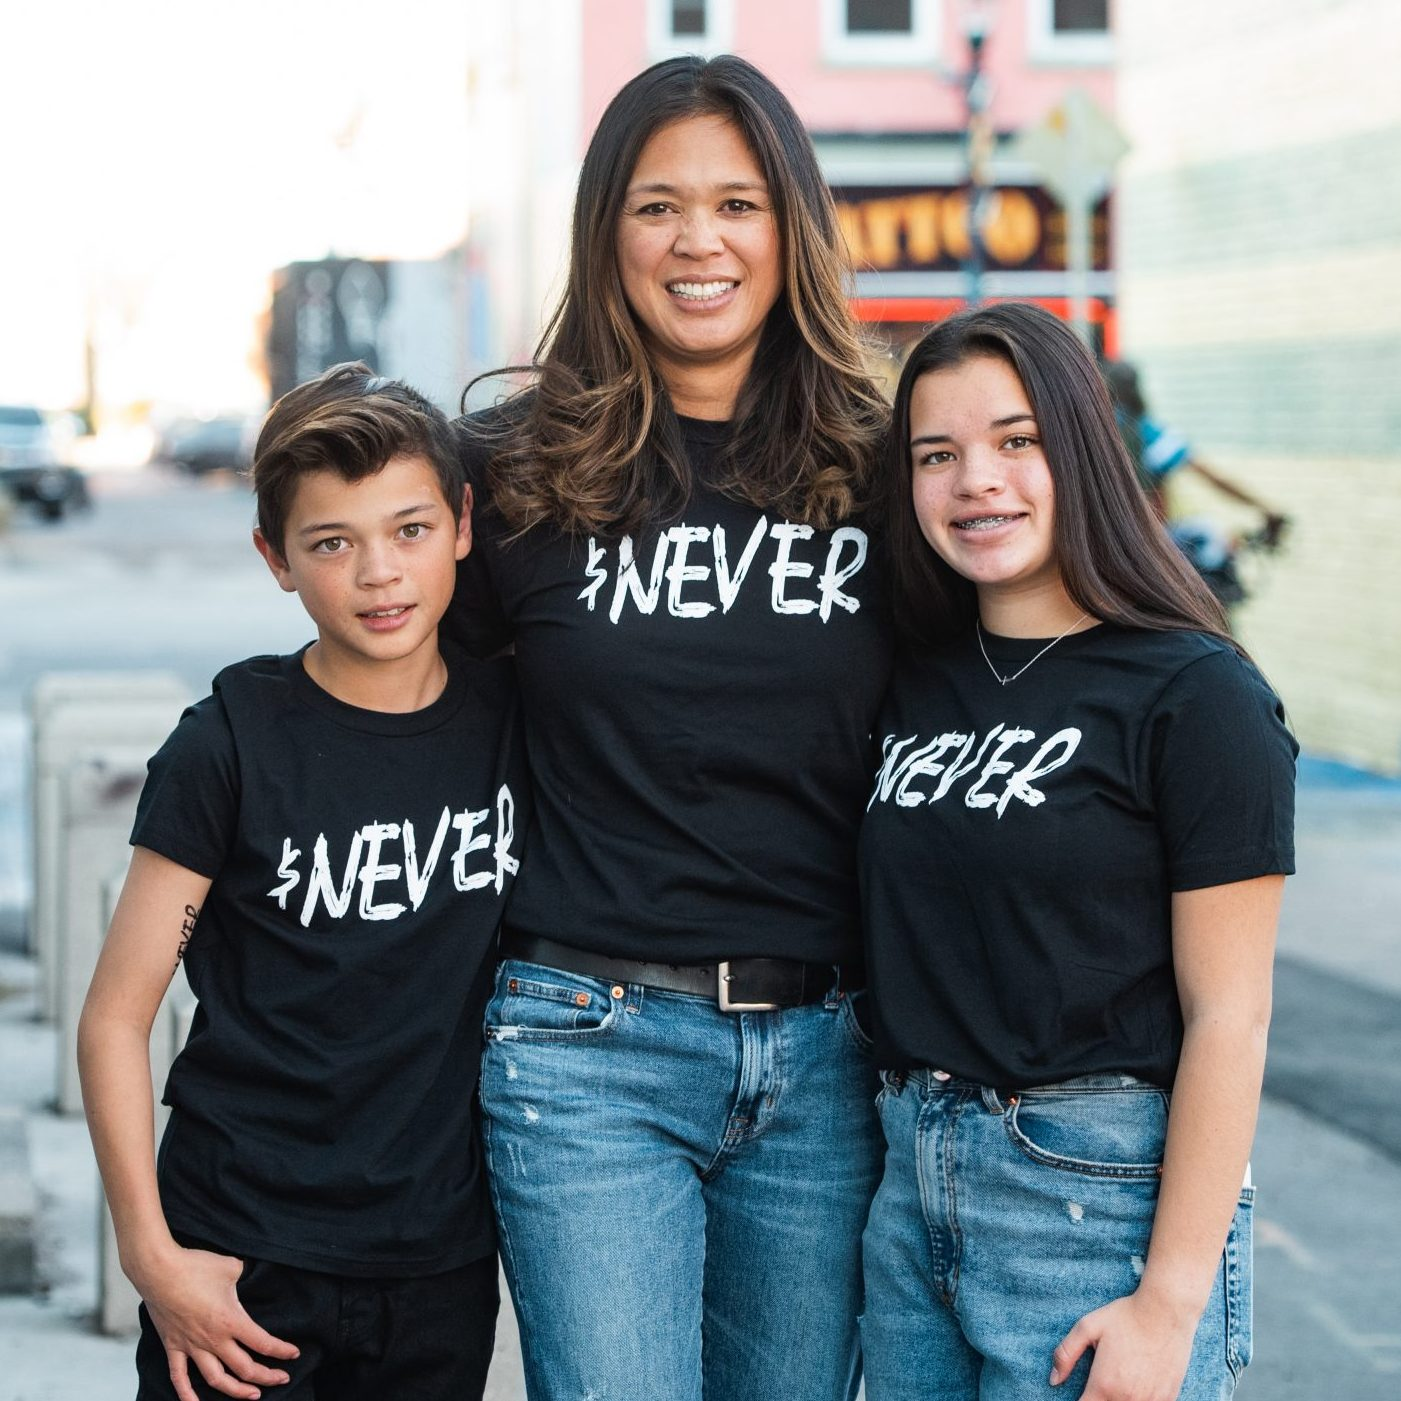 A mom and her two kids stand together on a street in Colorado while wearing The Exodus Road t-shirts.